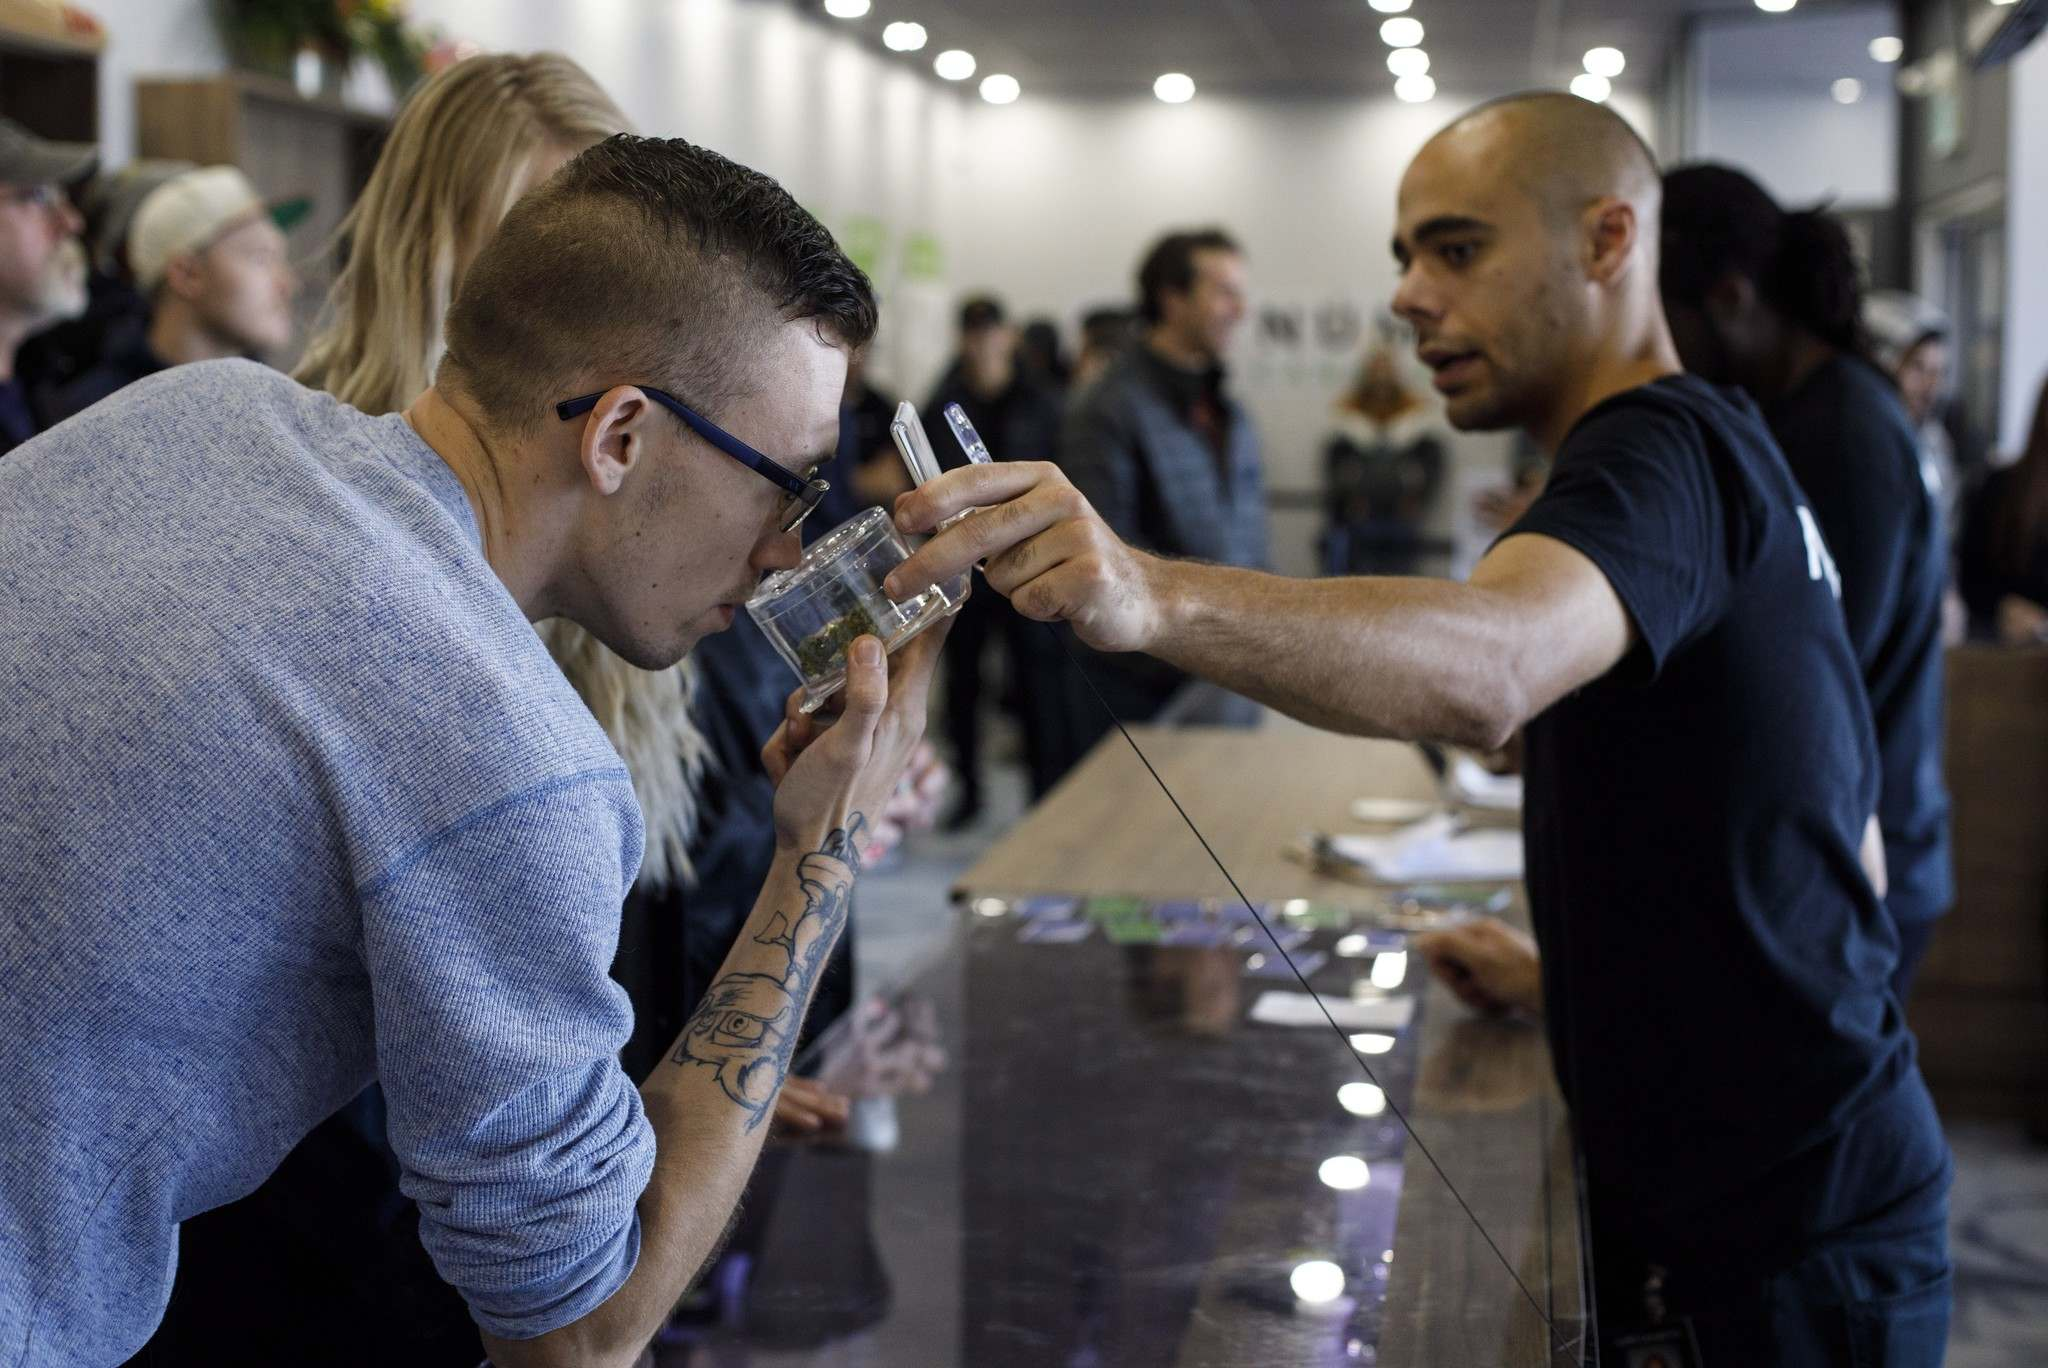 Alberta has issued 75 licences for private cannabis stores. (Canadian Press/Jason Franson)</p>